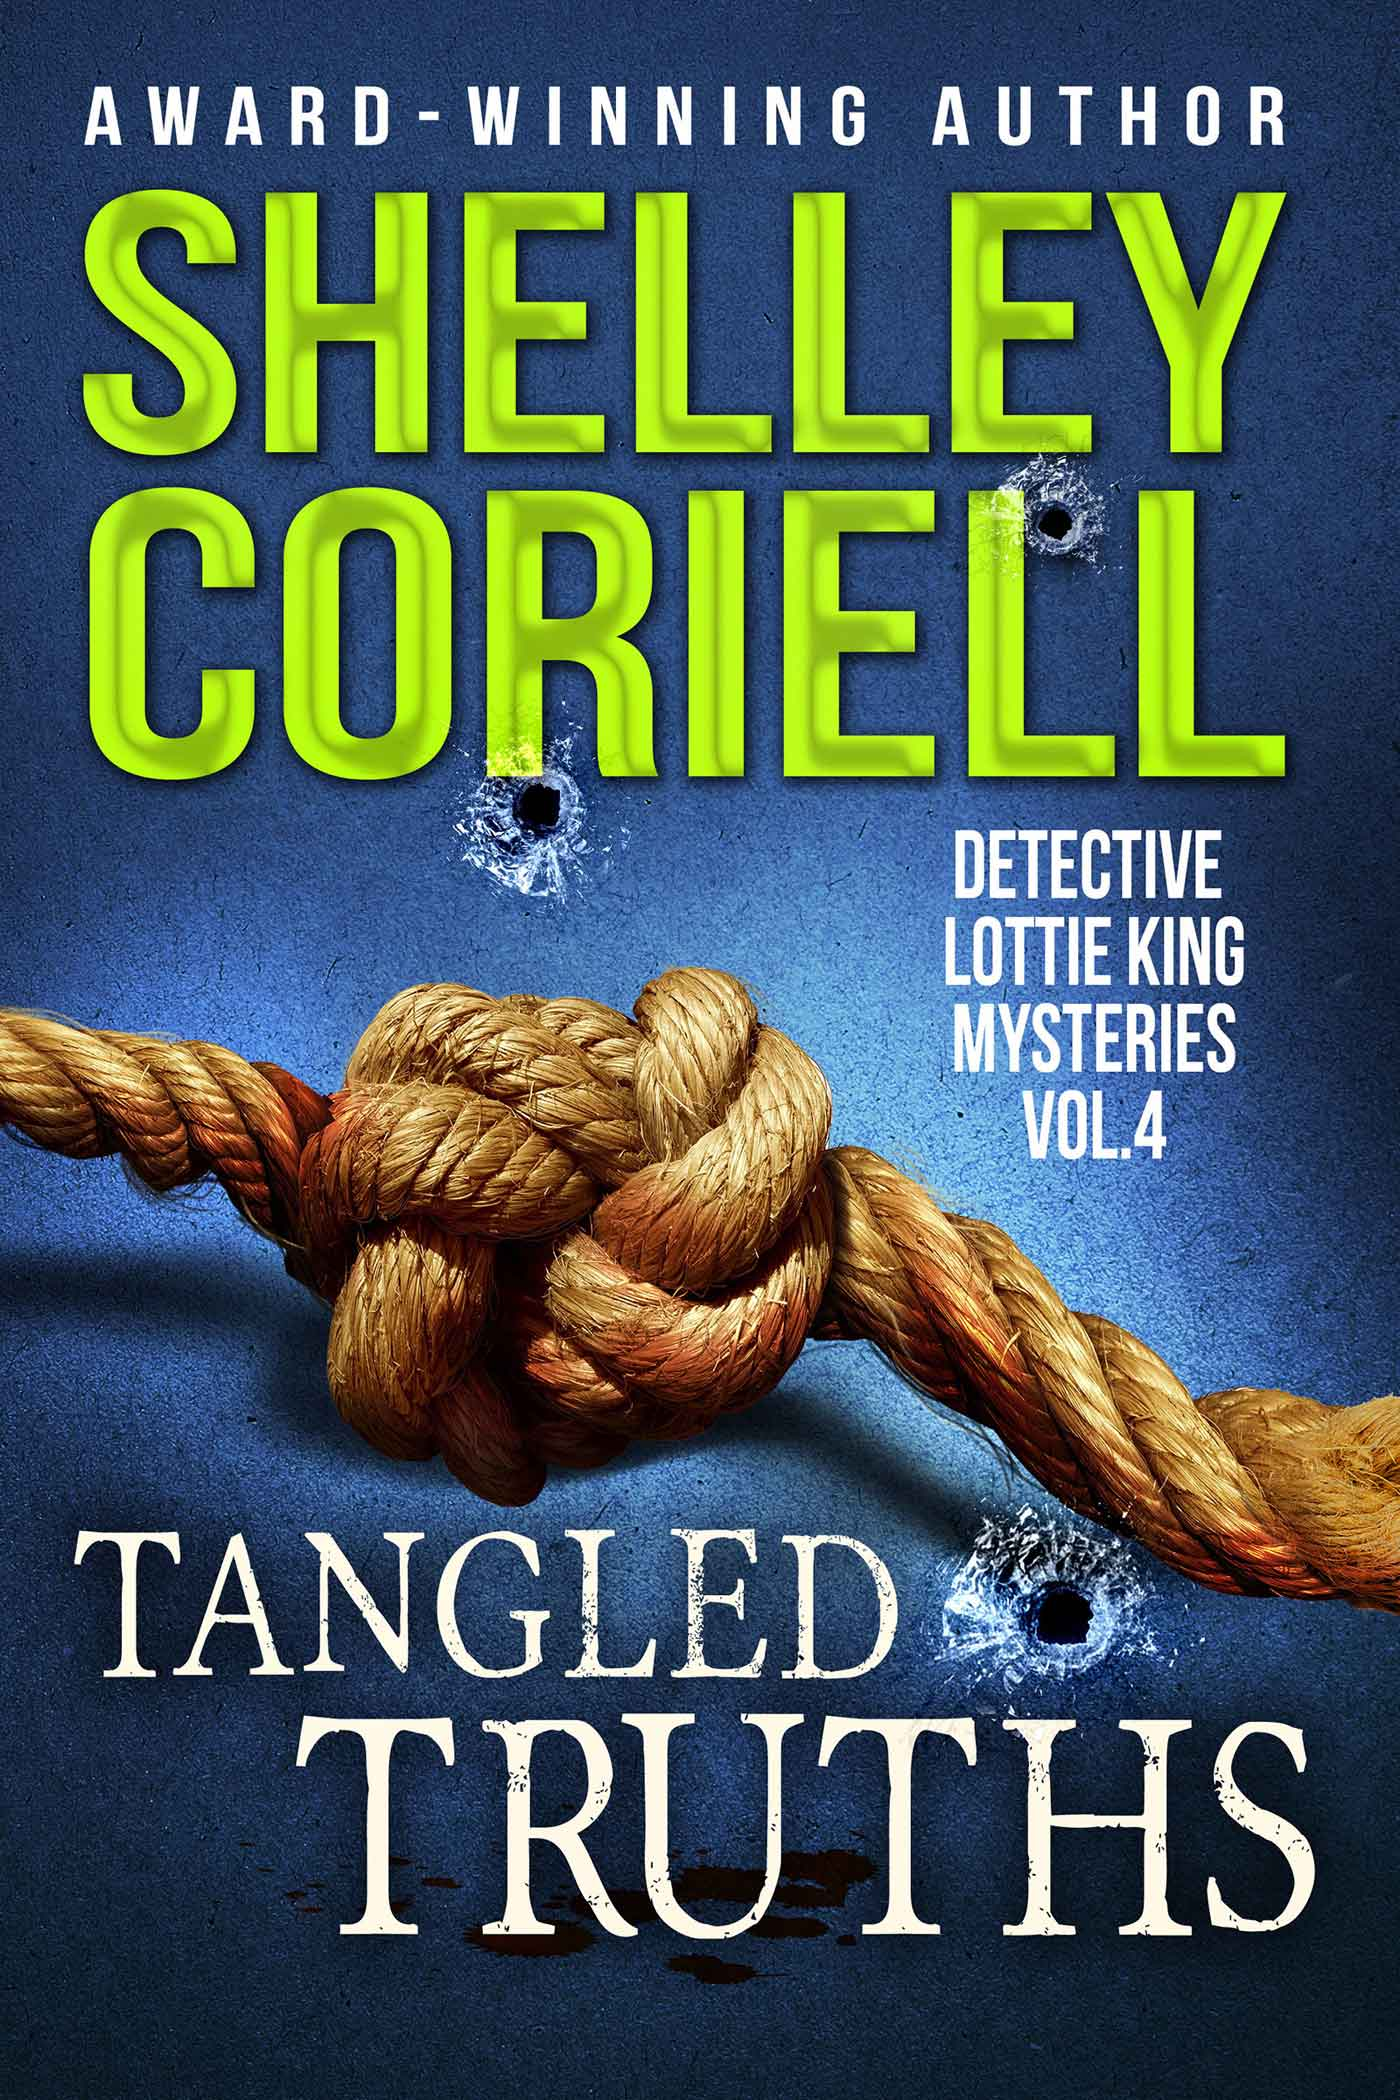 Tangled Truths (Detective Lottie King Mysteries, Vol. 4) a mystery anthology by Shelley Coriell, published by Winter Pear Press